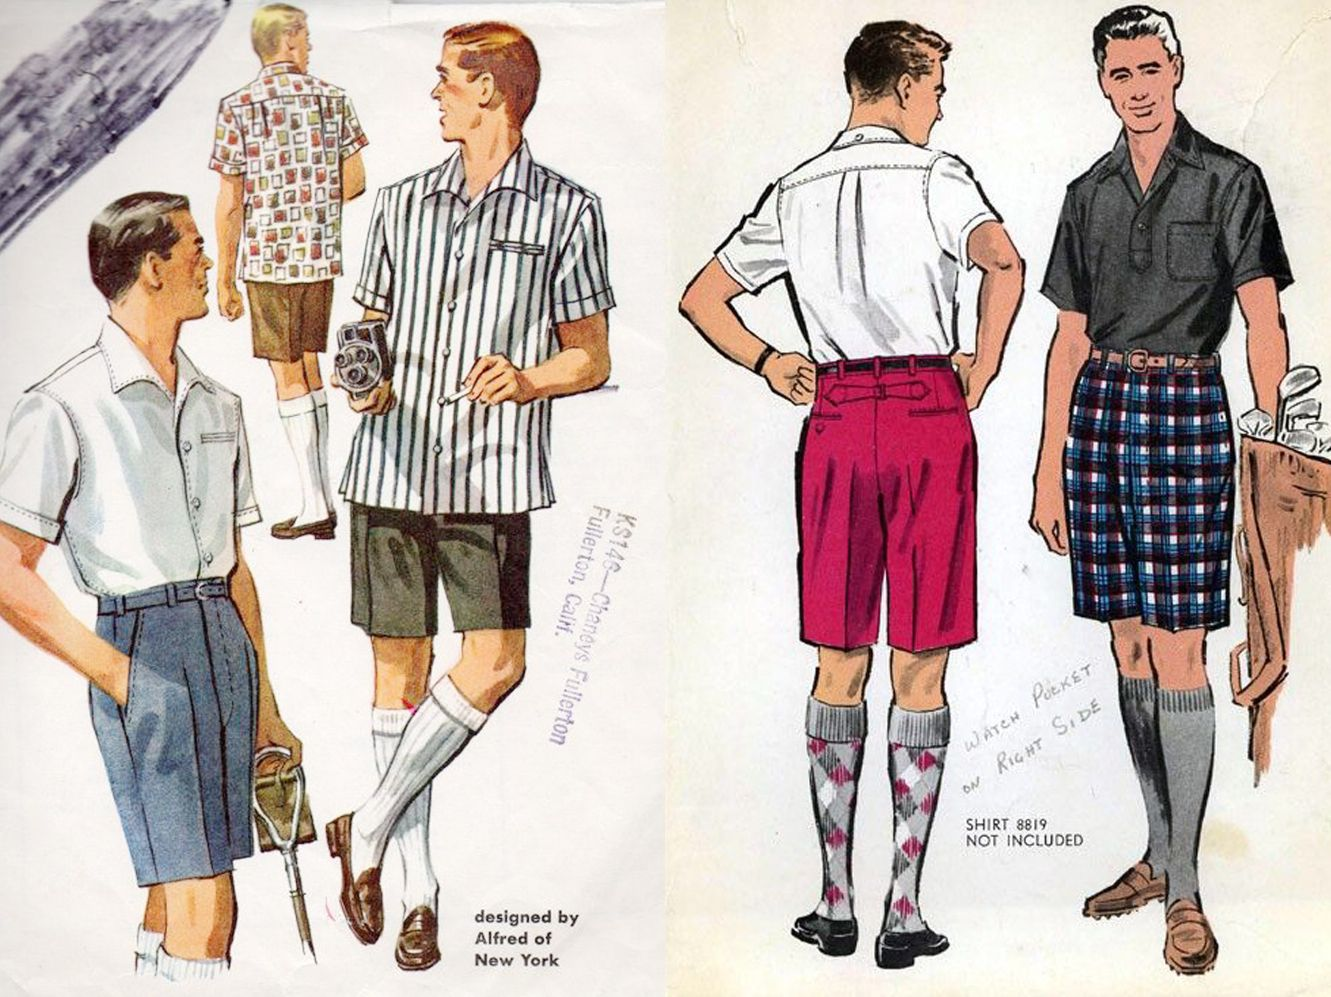 b1739f81f8 Dare To Wear: The History of Bermuda Shorts in Photos